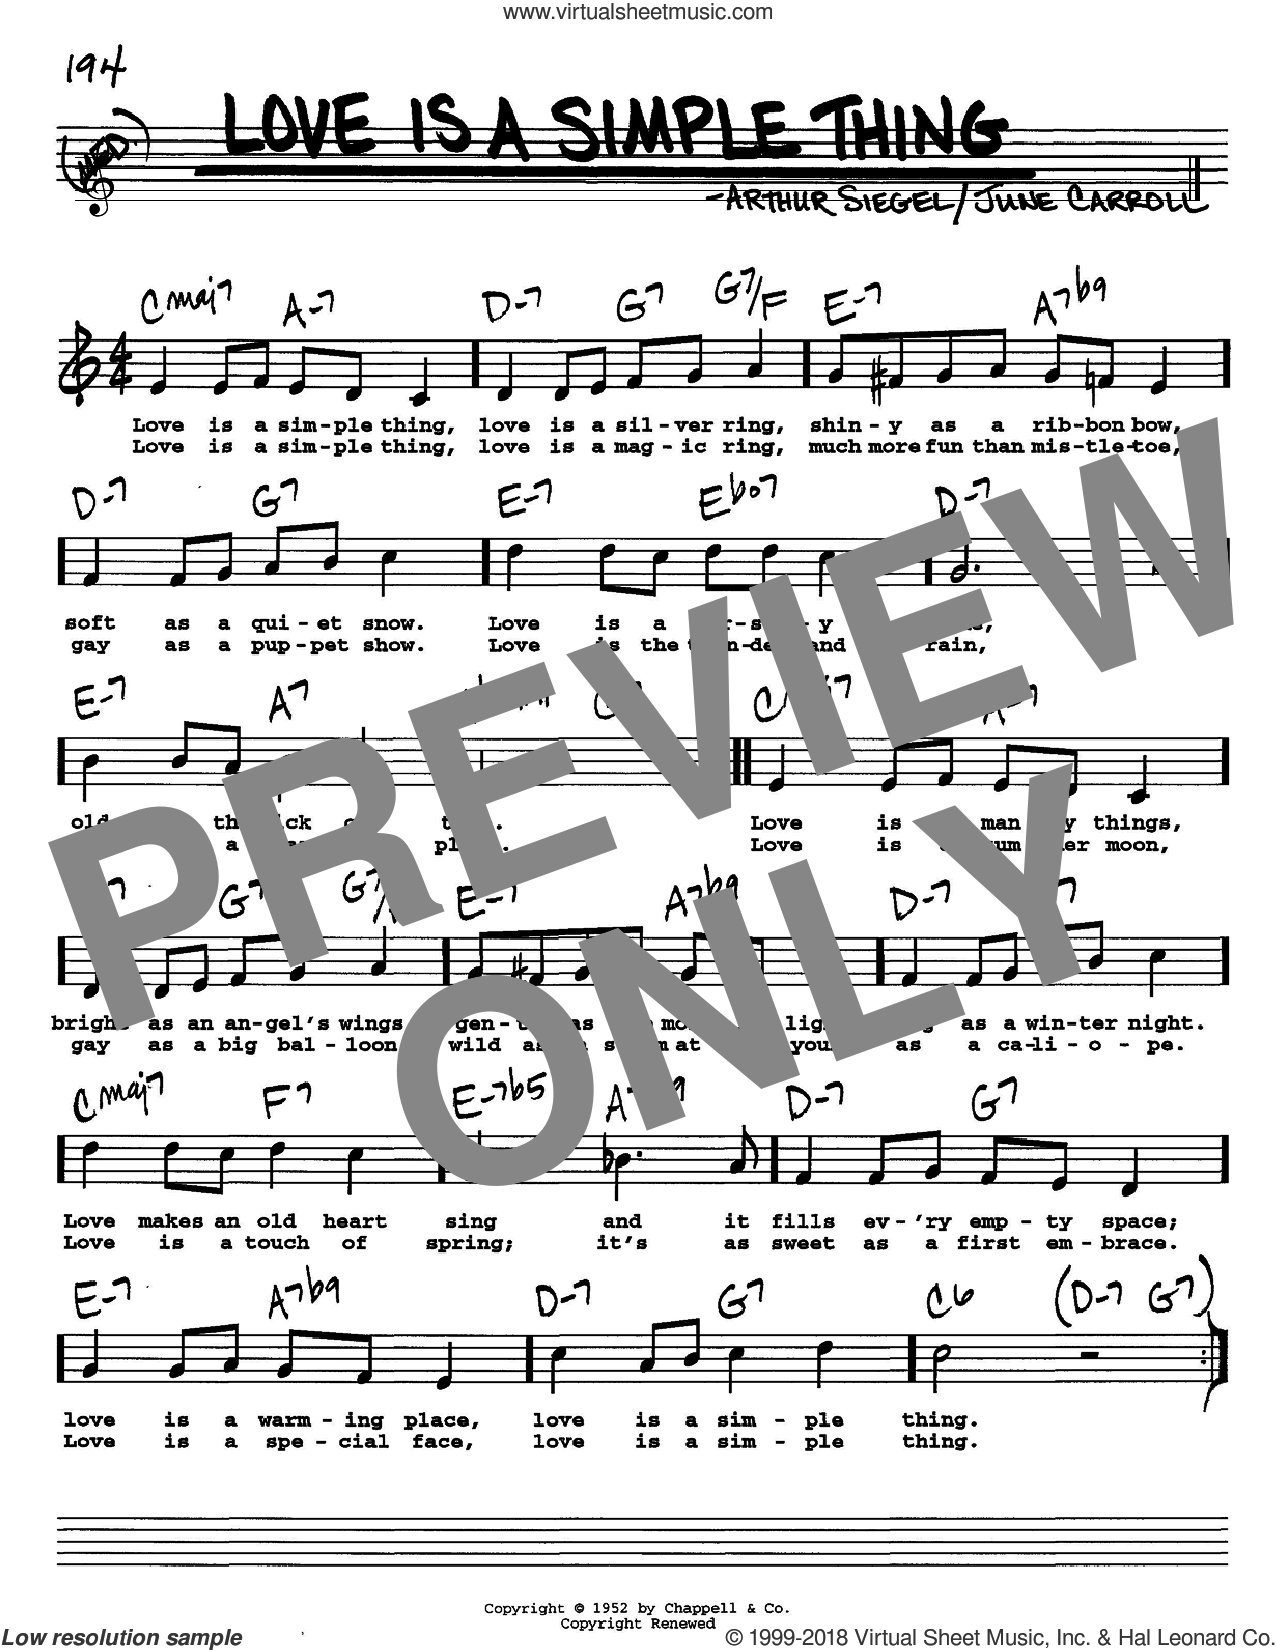 Love Is A Simple Thing sheet music for voice and other instruments (Vocal Volume 2) by Arthur Siegel